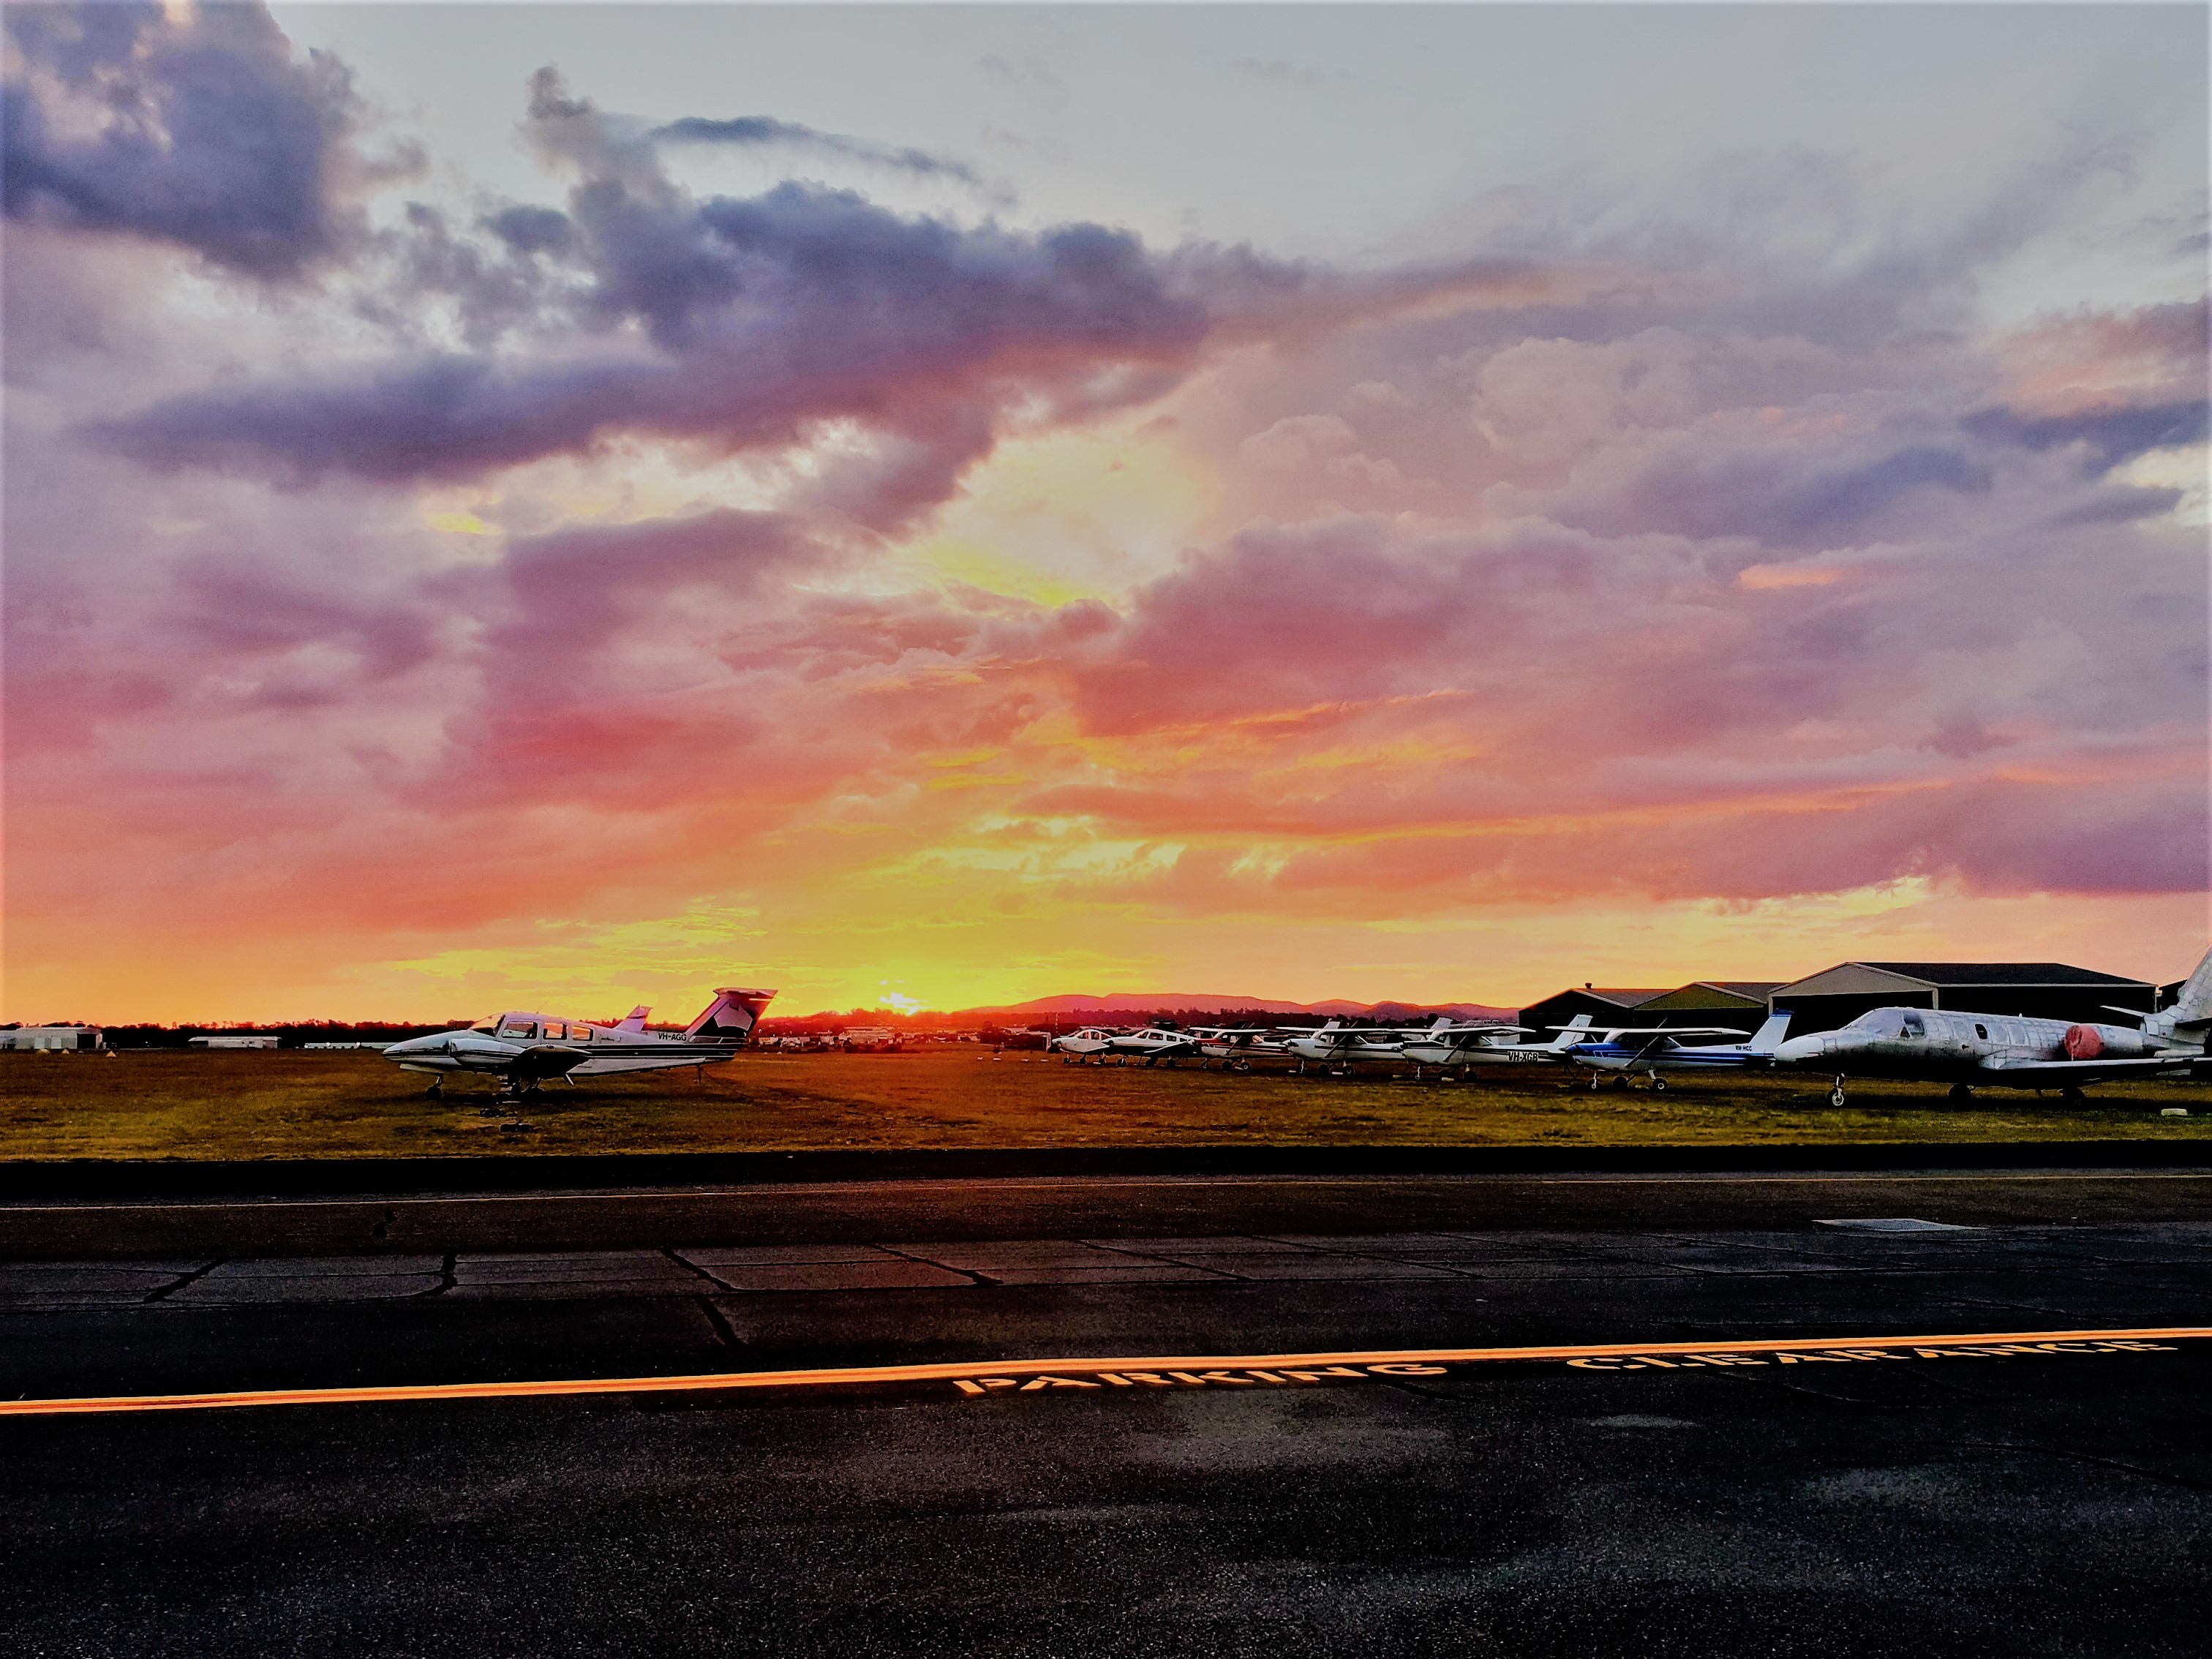 Michelle Christensen, Archerfield Airport